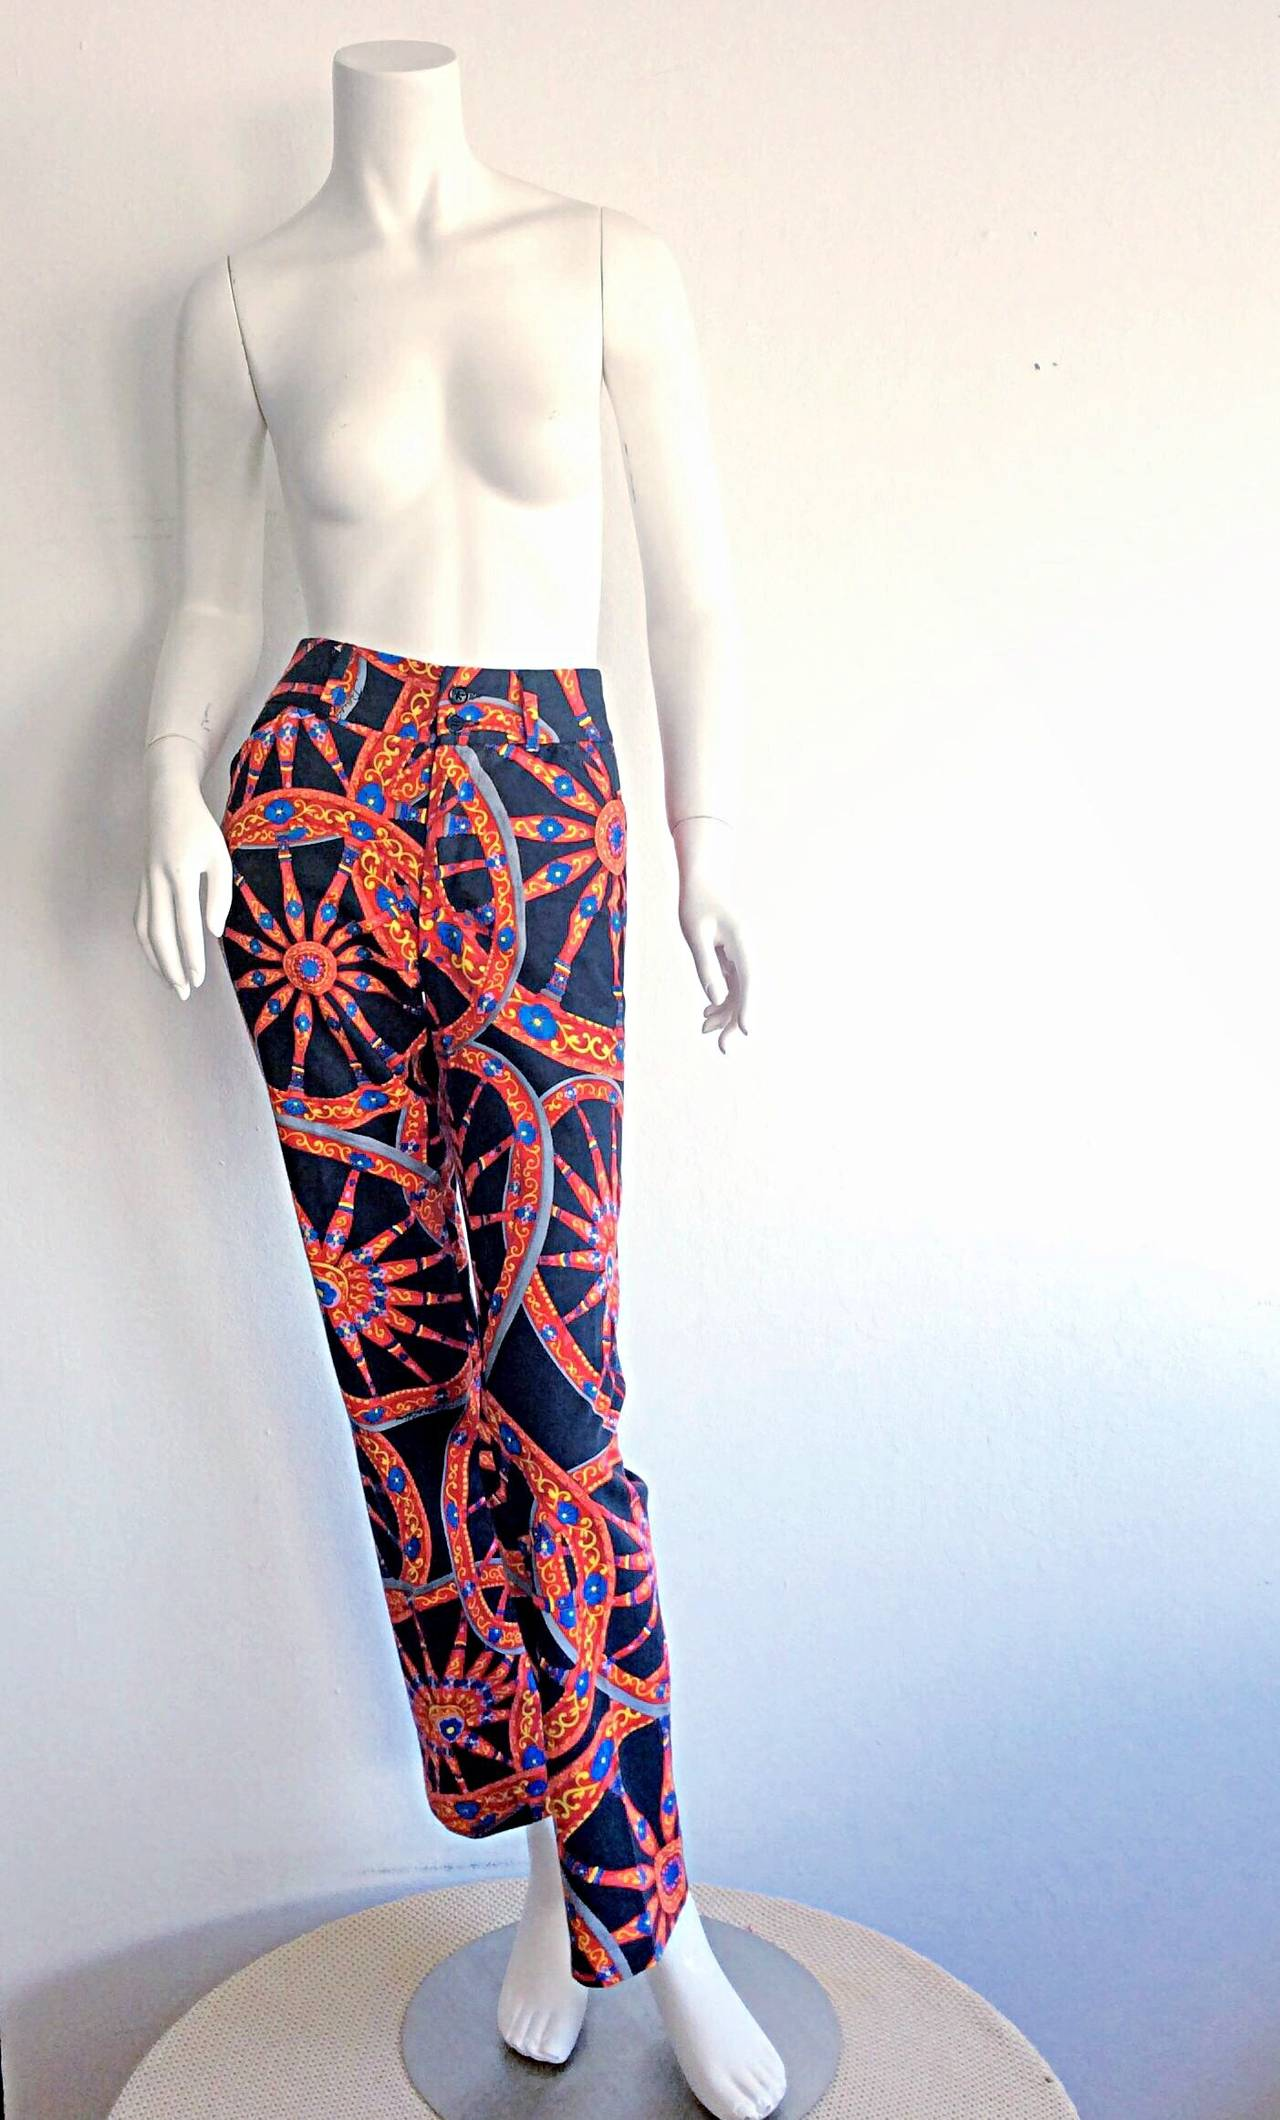 Wonderful Dolce & Gabbana slim fit cotton trousers, with an incredible Italianate Nautical theme. A great fit, that is very flattering on. Dolce & Gabbana signature throughout the trousers. Two rear pockets. In great condition. Approximately Size US